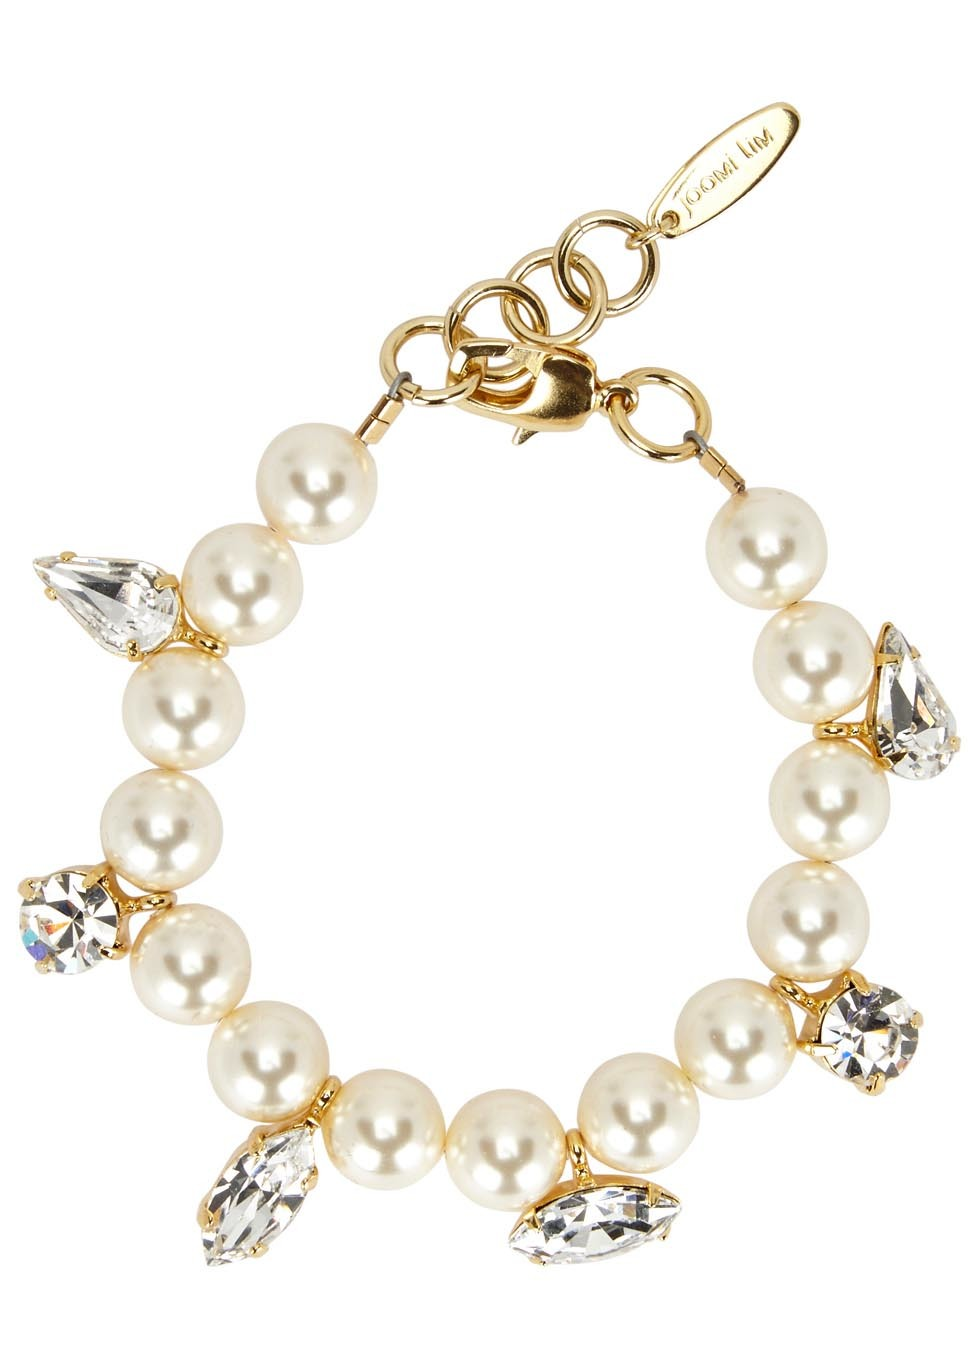 Swarovski Faux Pearl Embellished Bracelet - secondary colour: ivory/cream; predominant colour: gold; occasions: evening, occasion; style: charm; size: standard; material: chain/metal; finish: metallic; embellishment: pearls; season: a/w 2016; wardrobe: event